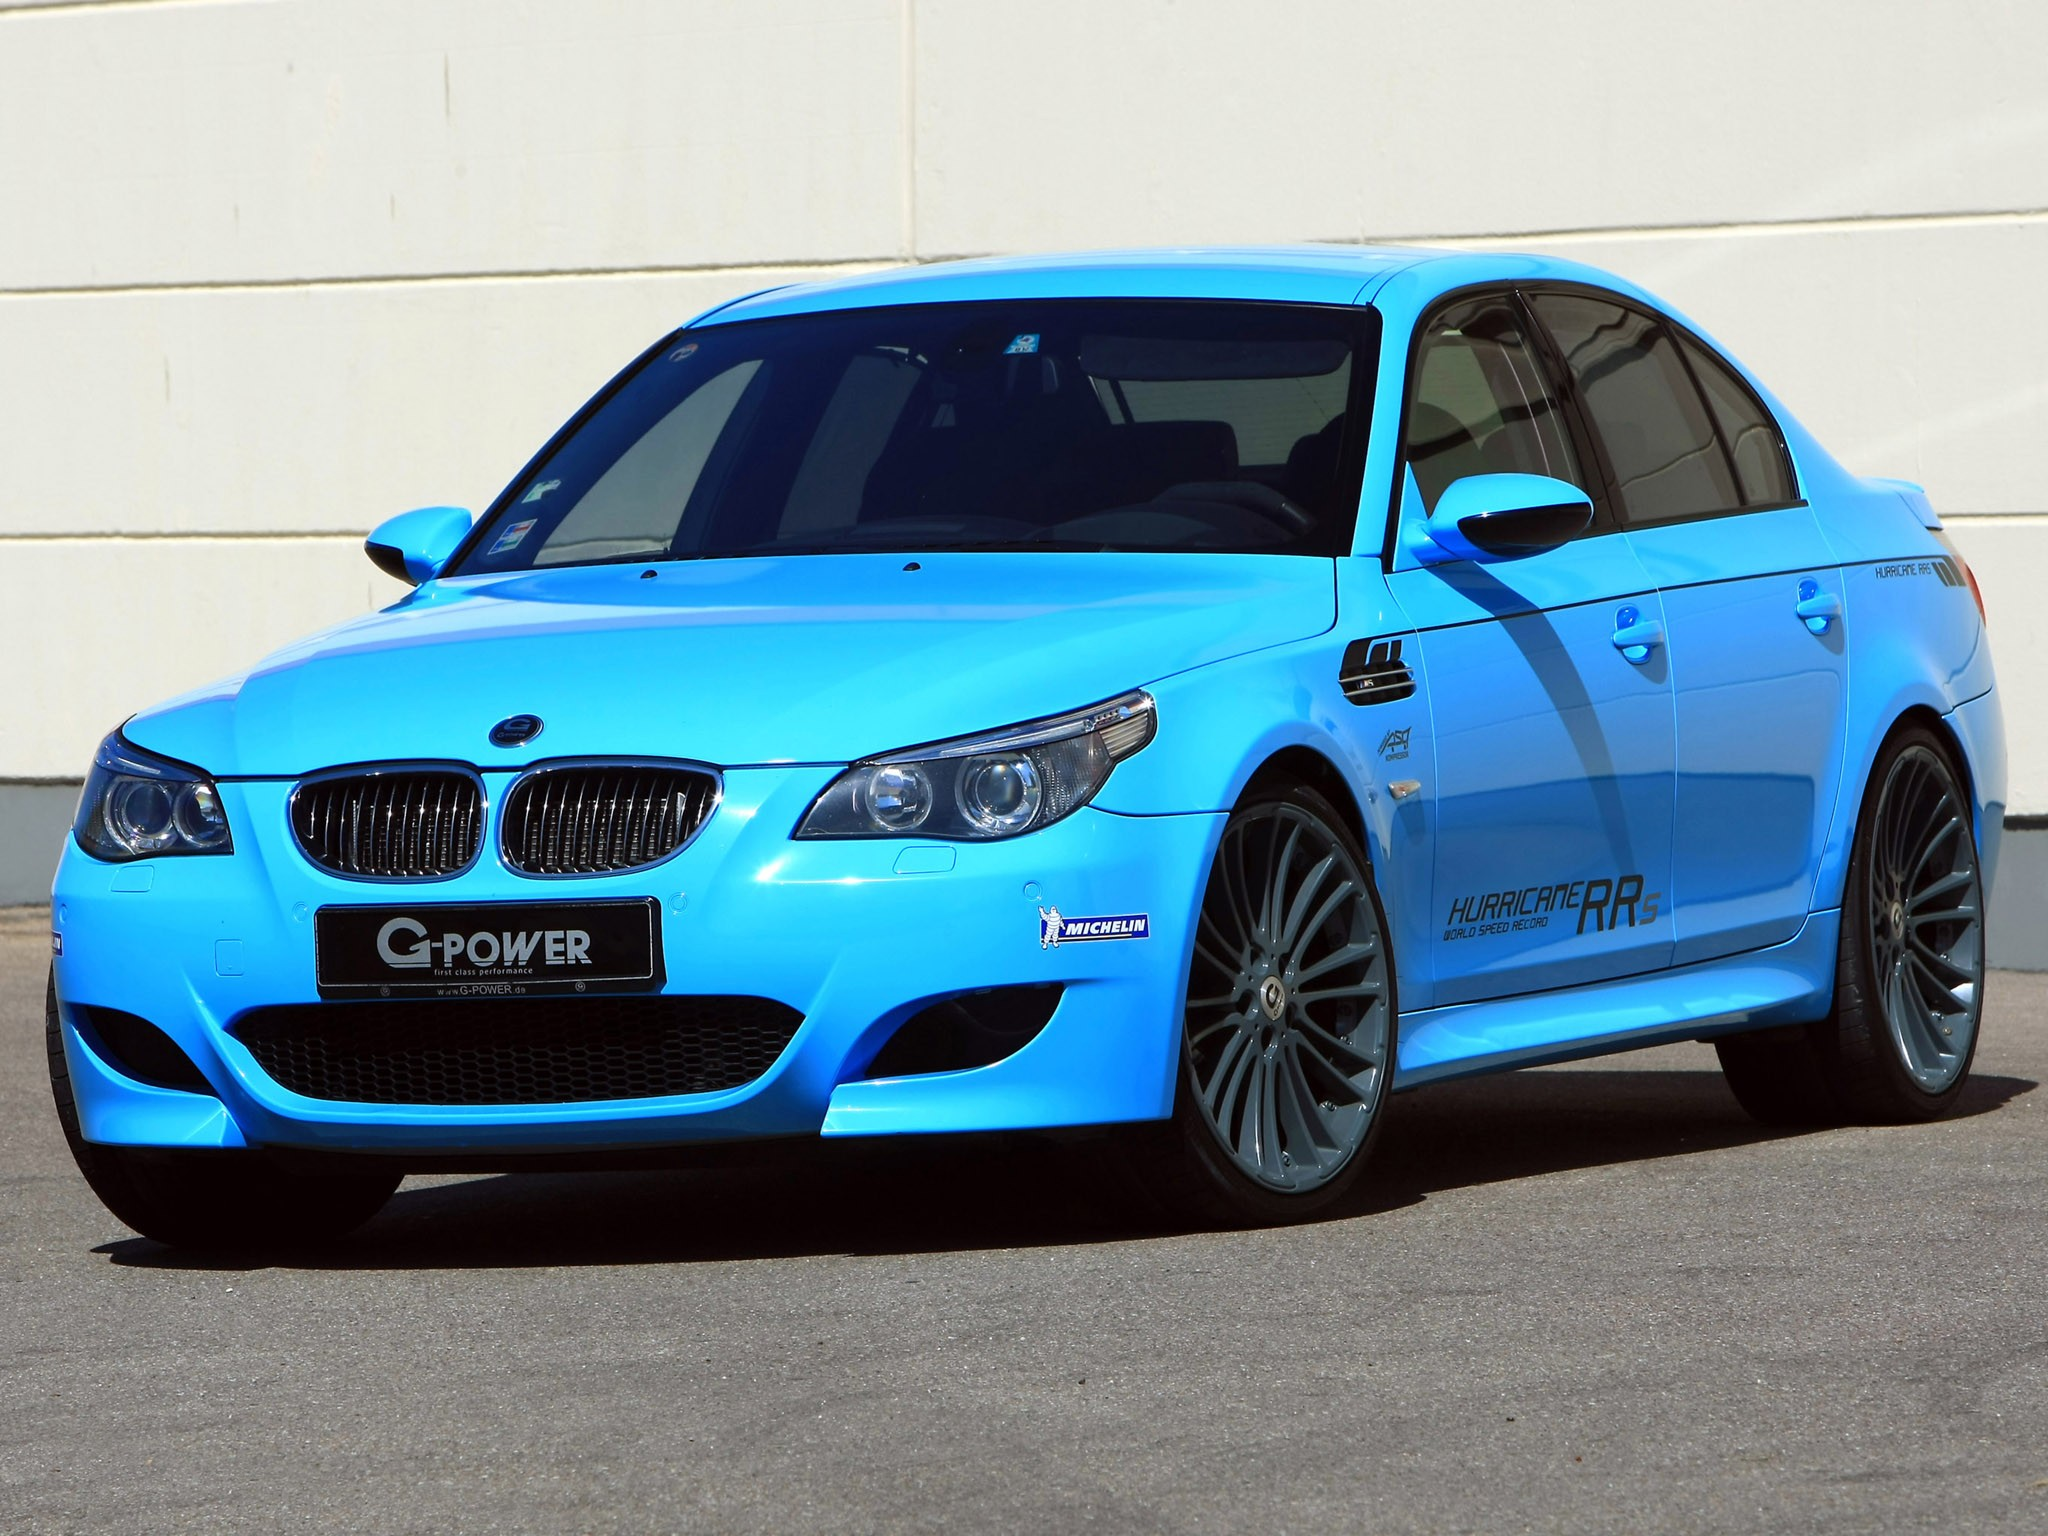 2012 G-Power - Bmw M5 Hurricane RRS